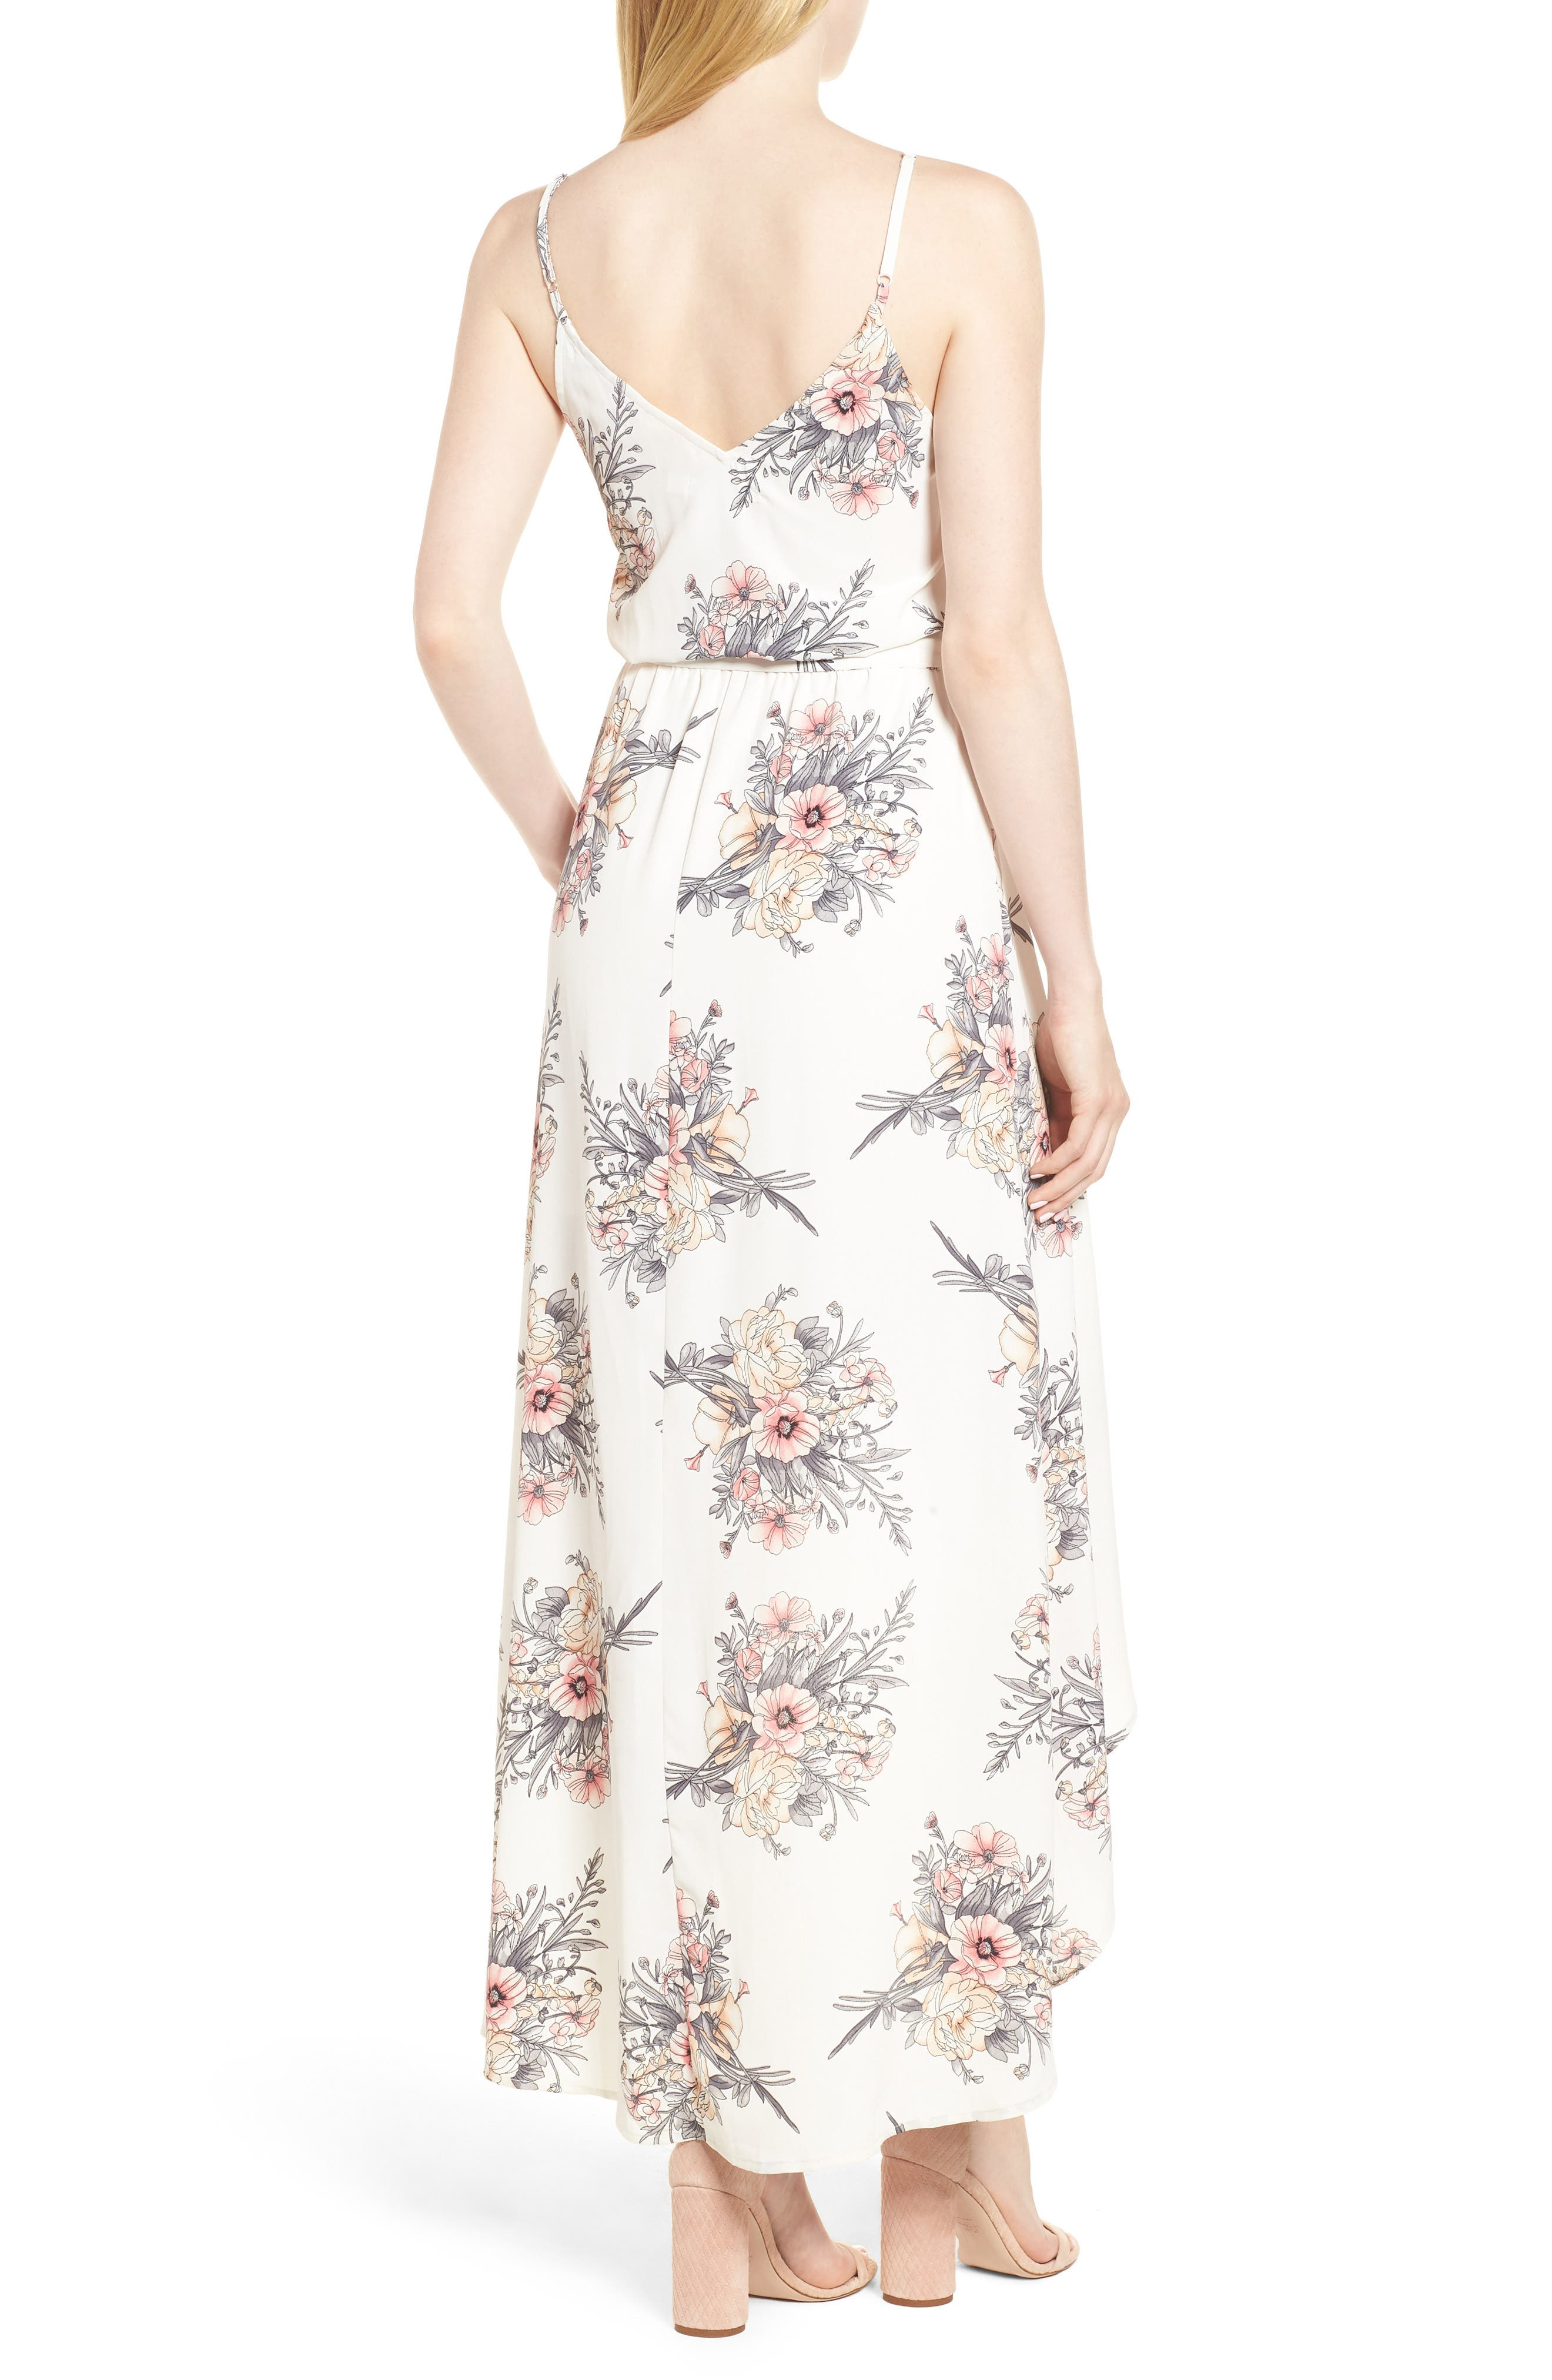 Bishop + Young Summer of Love Maxi Dress,                             Alternate thumbnail 2, color,                             Summer Of Love Print